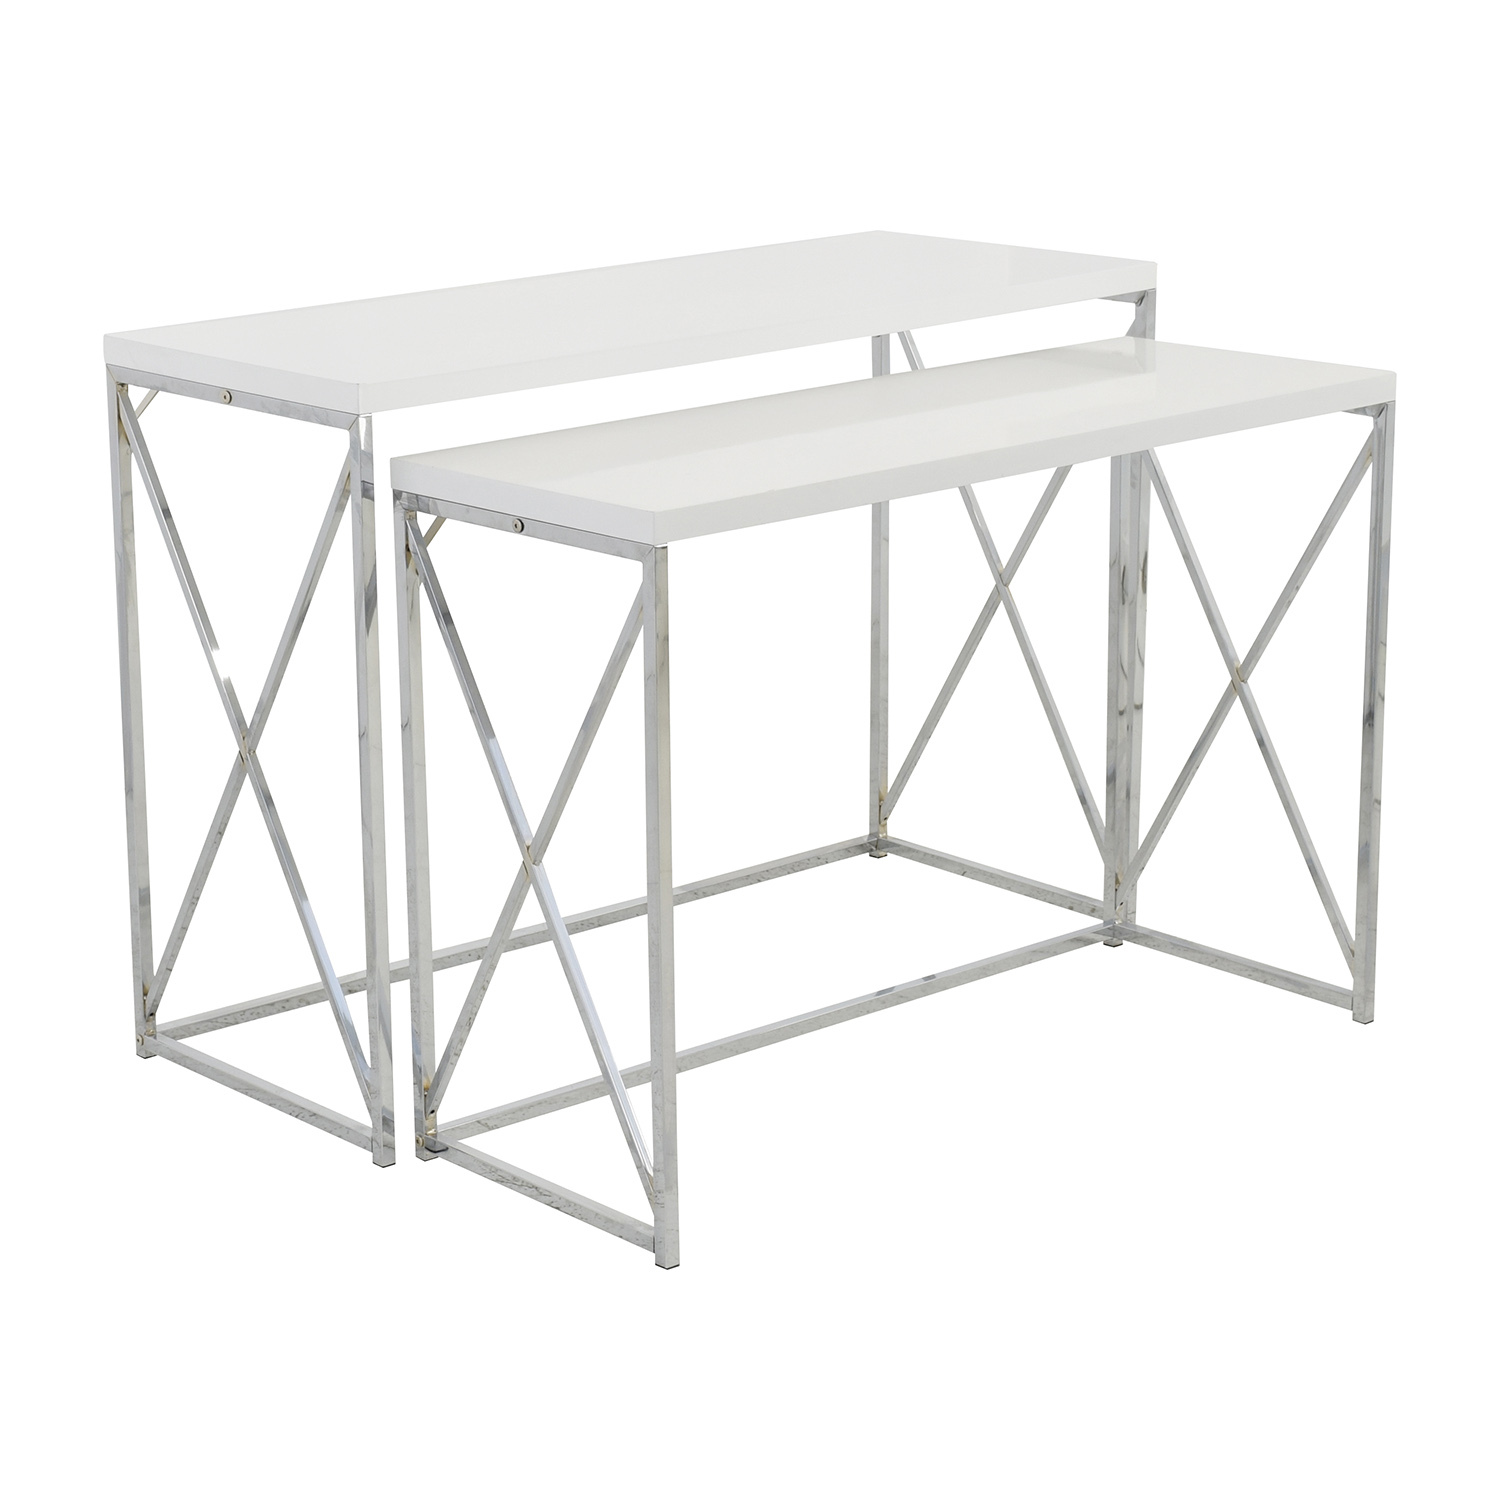 ... Shop Monarch Specialties White And Chrome Nesting Console Tables  Monarch Specialties Tables ...